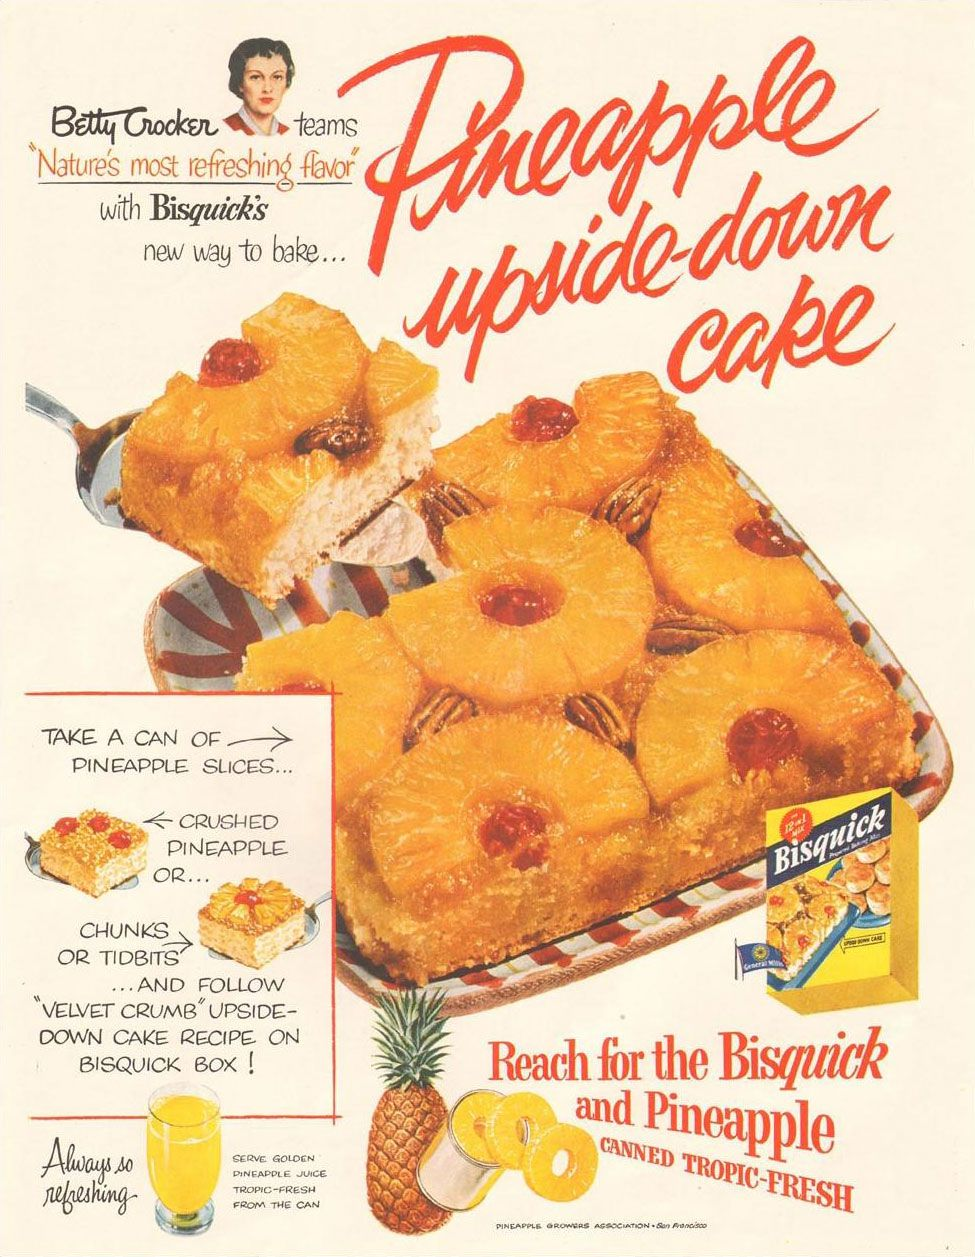 vintage betty crocker ads google search du bonheur dans la cuisine pinterest dessert. Black Bedroom Furniture Sets. Home Design Ideas